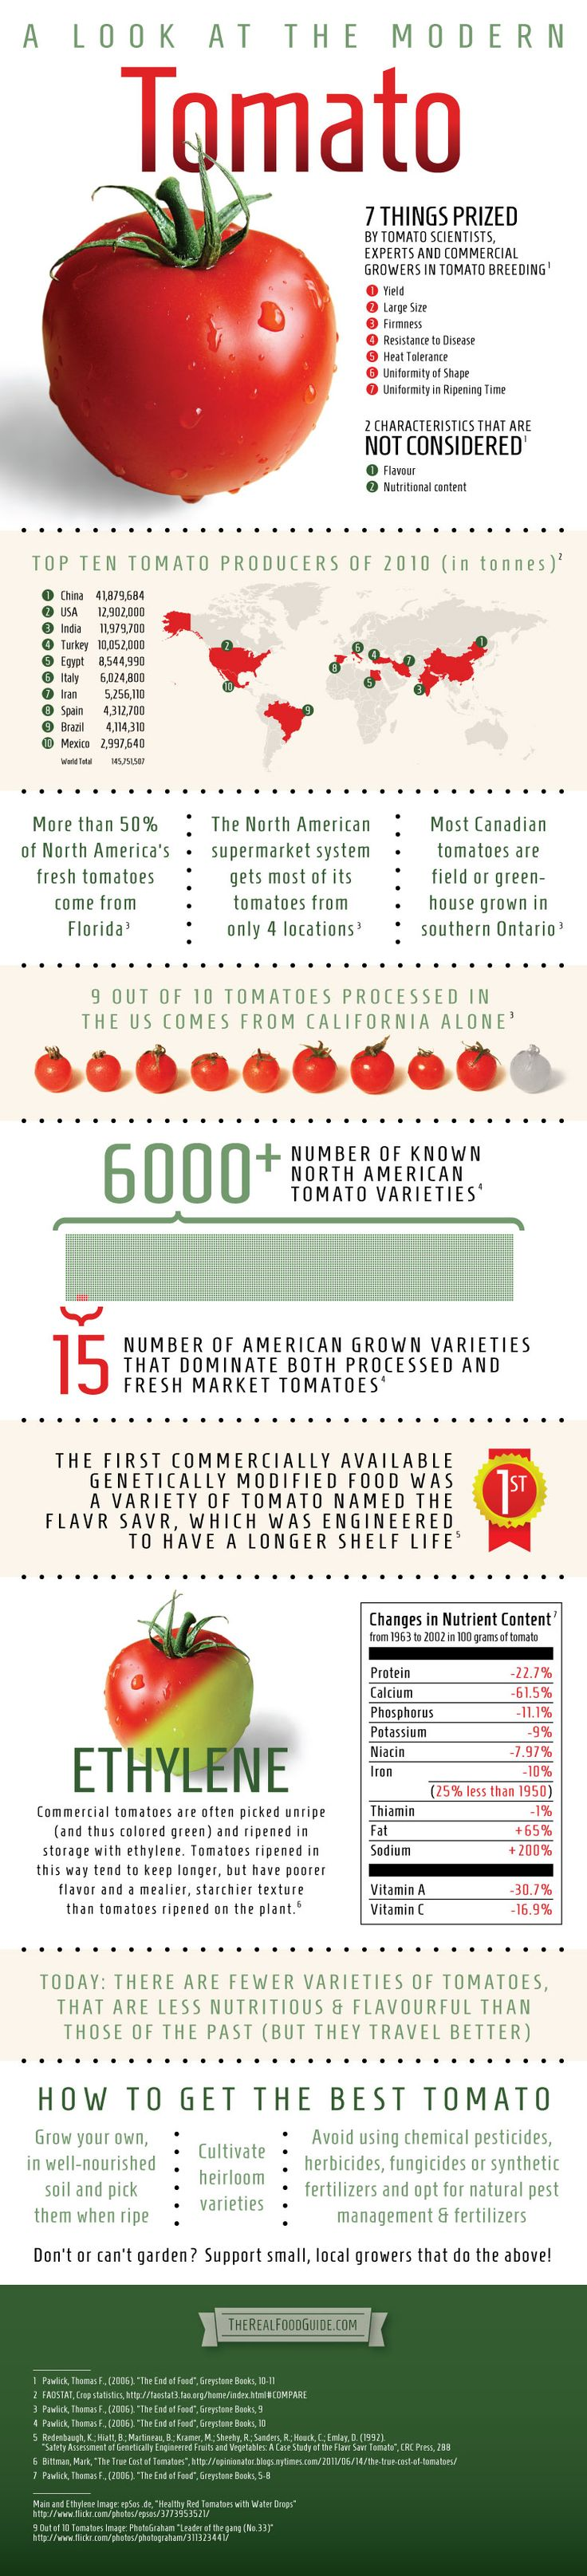 Infographic: A look at the modern tomato - The Real Food Guide